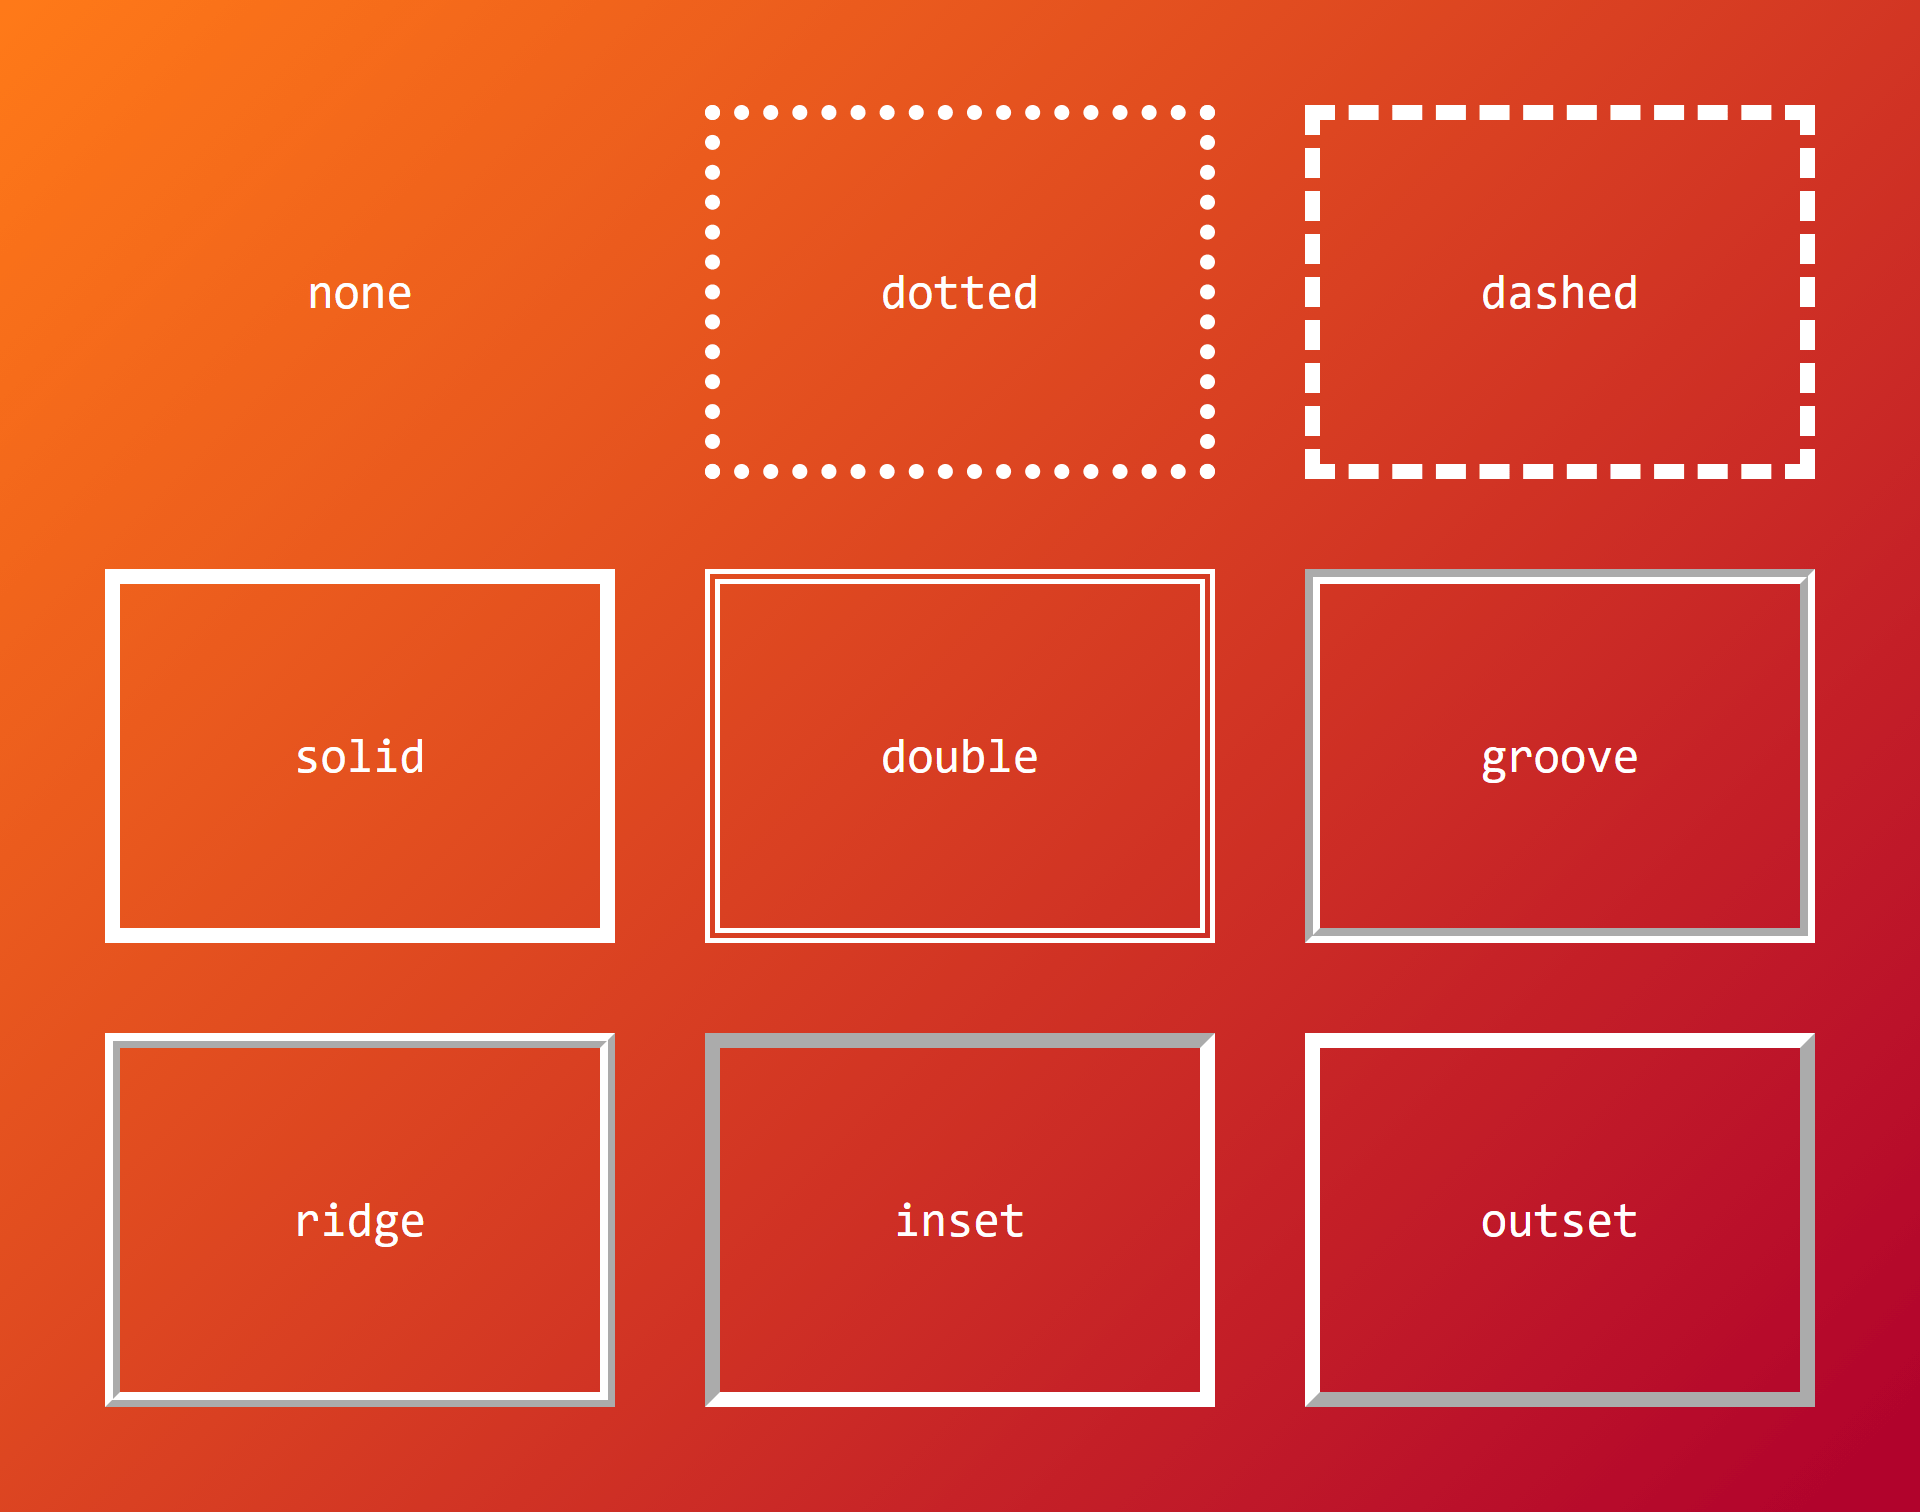 A three-by-three grid of boxes that are evenly spaced in white against a gradient that goes from bright orange to dark orange. Each box demonstrates an outline-style property value.